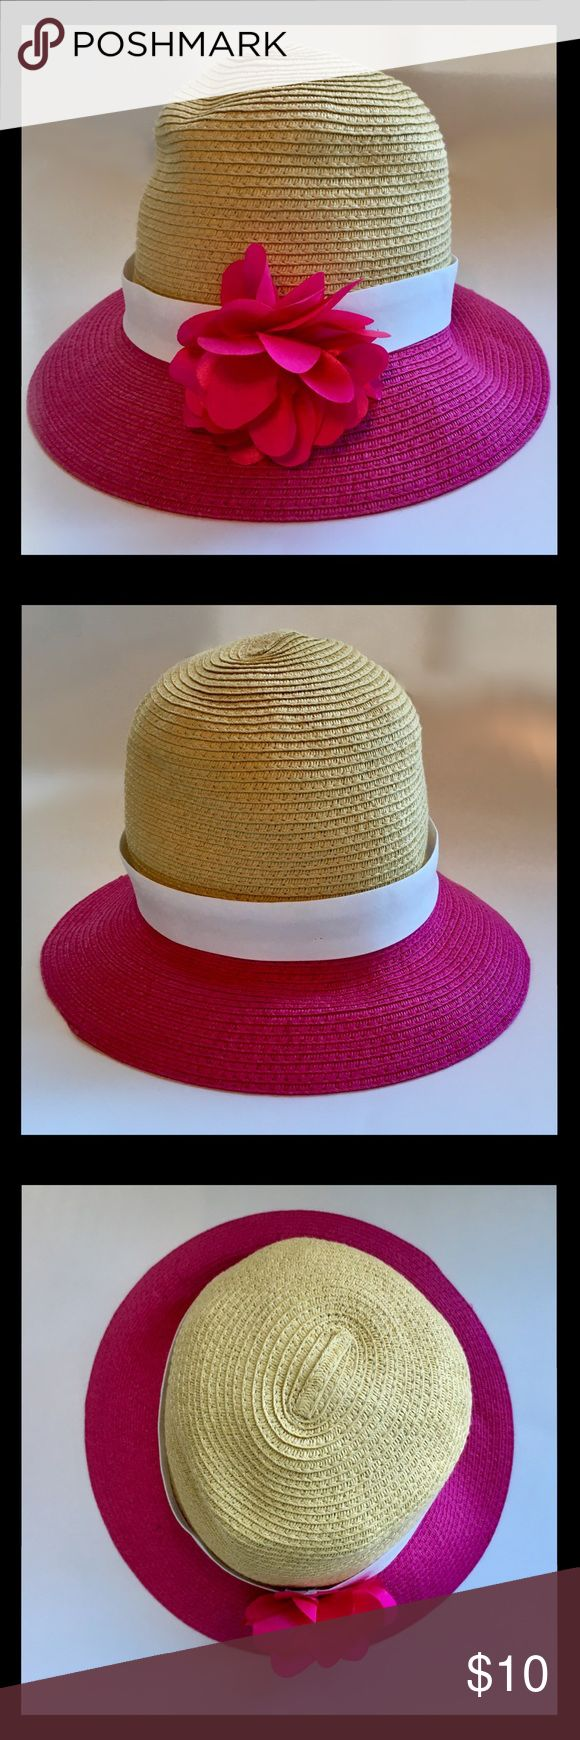 GYMBOREE Straw Hat 🎀 Pink Flower White Ribbon L Adorable GYMBOREE Straw Hat accented in white ribbon and a pink flower.  ·        Gymboree. ·        Girls' Size: Large, 10 12. ·        Excellent Condition. ·        Material: 88% Paper, 12% Polyester. ·        See pictures for dimensions. Gymboree Accessories Hats